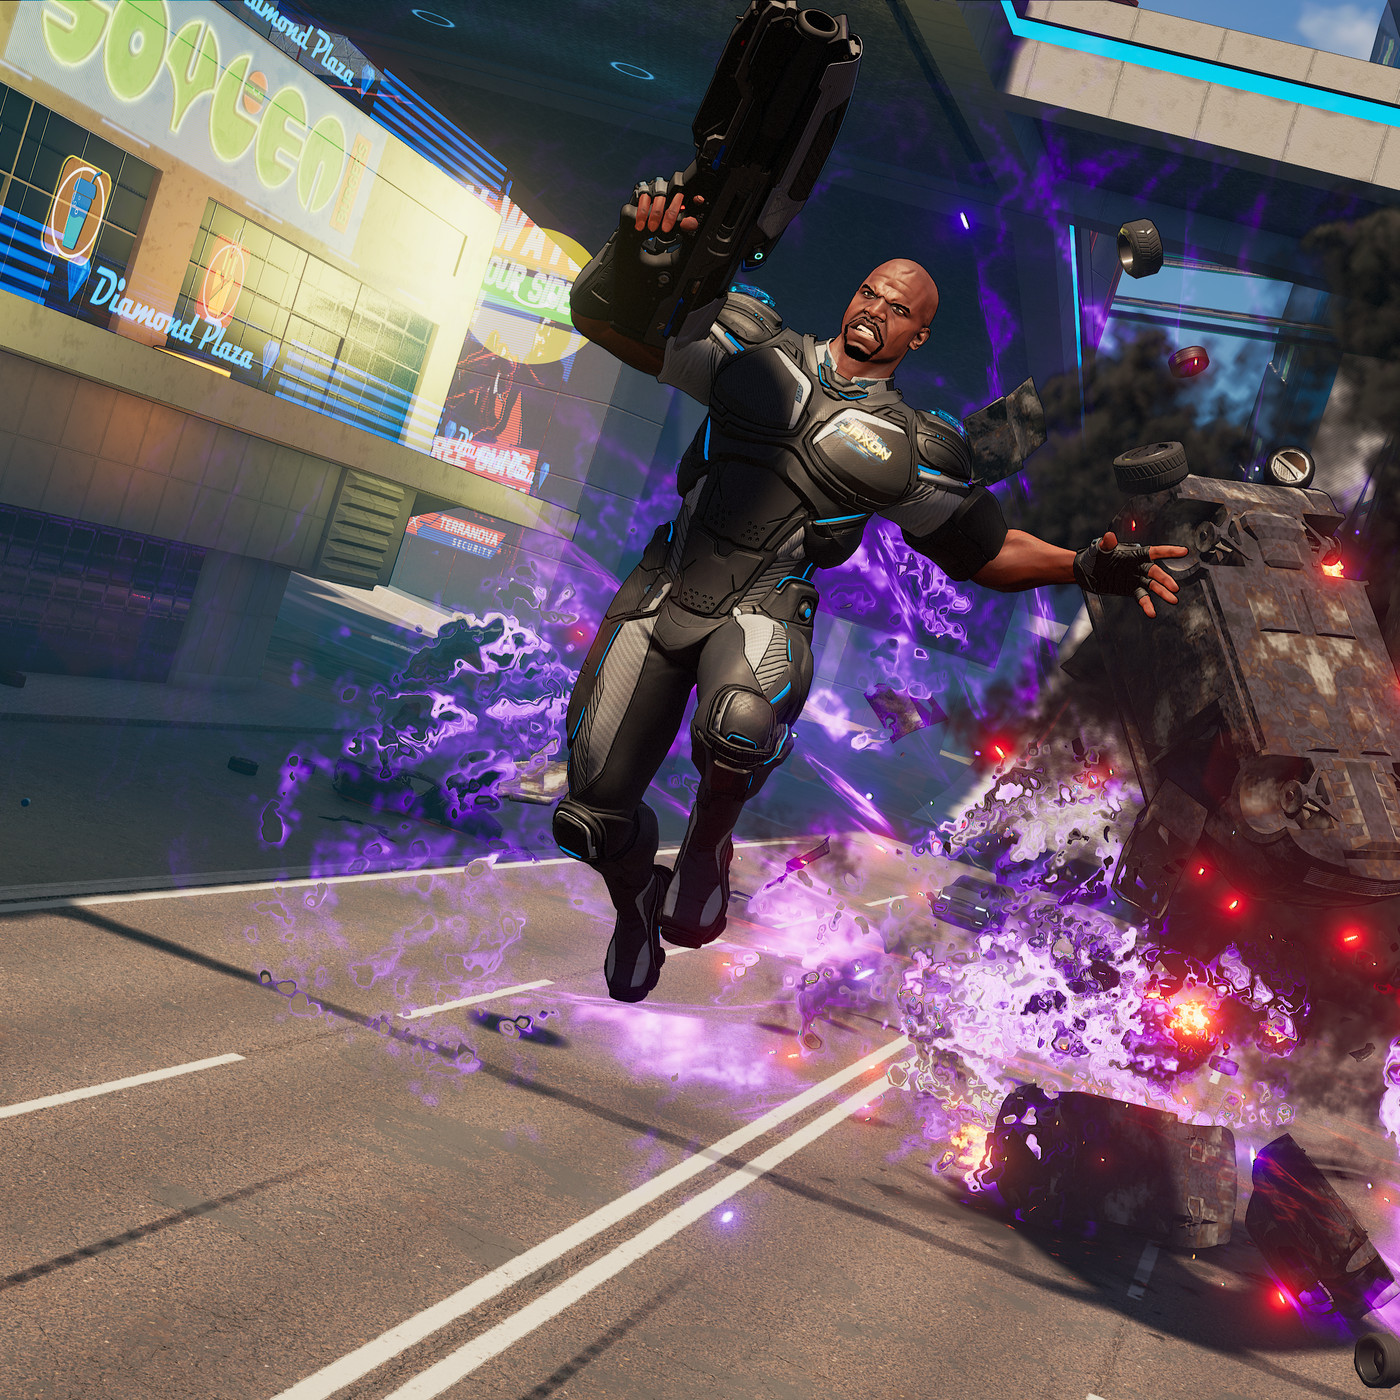 Crackdown 3 could be the future of Xbox games, for better